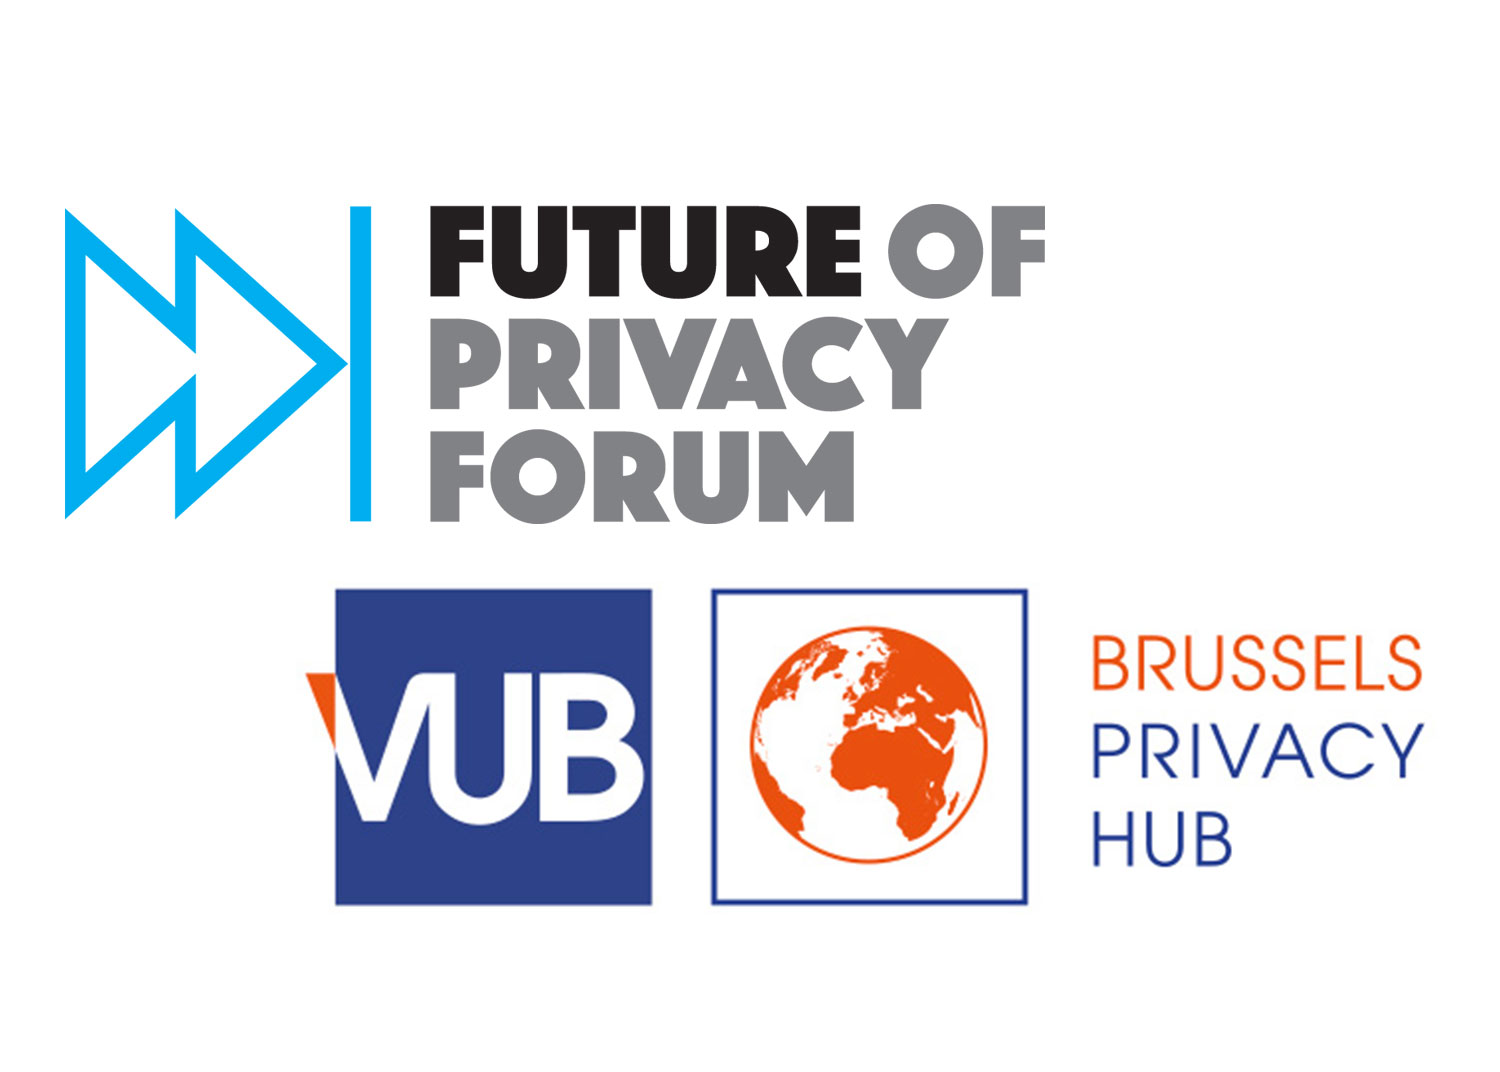 The 2nd Annual Brussels Privacy Symposium Is A Global Convening Of Practical Applicable Substantive Research And Scholarship Will